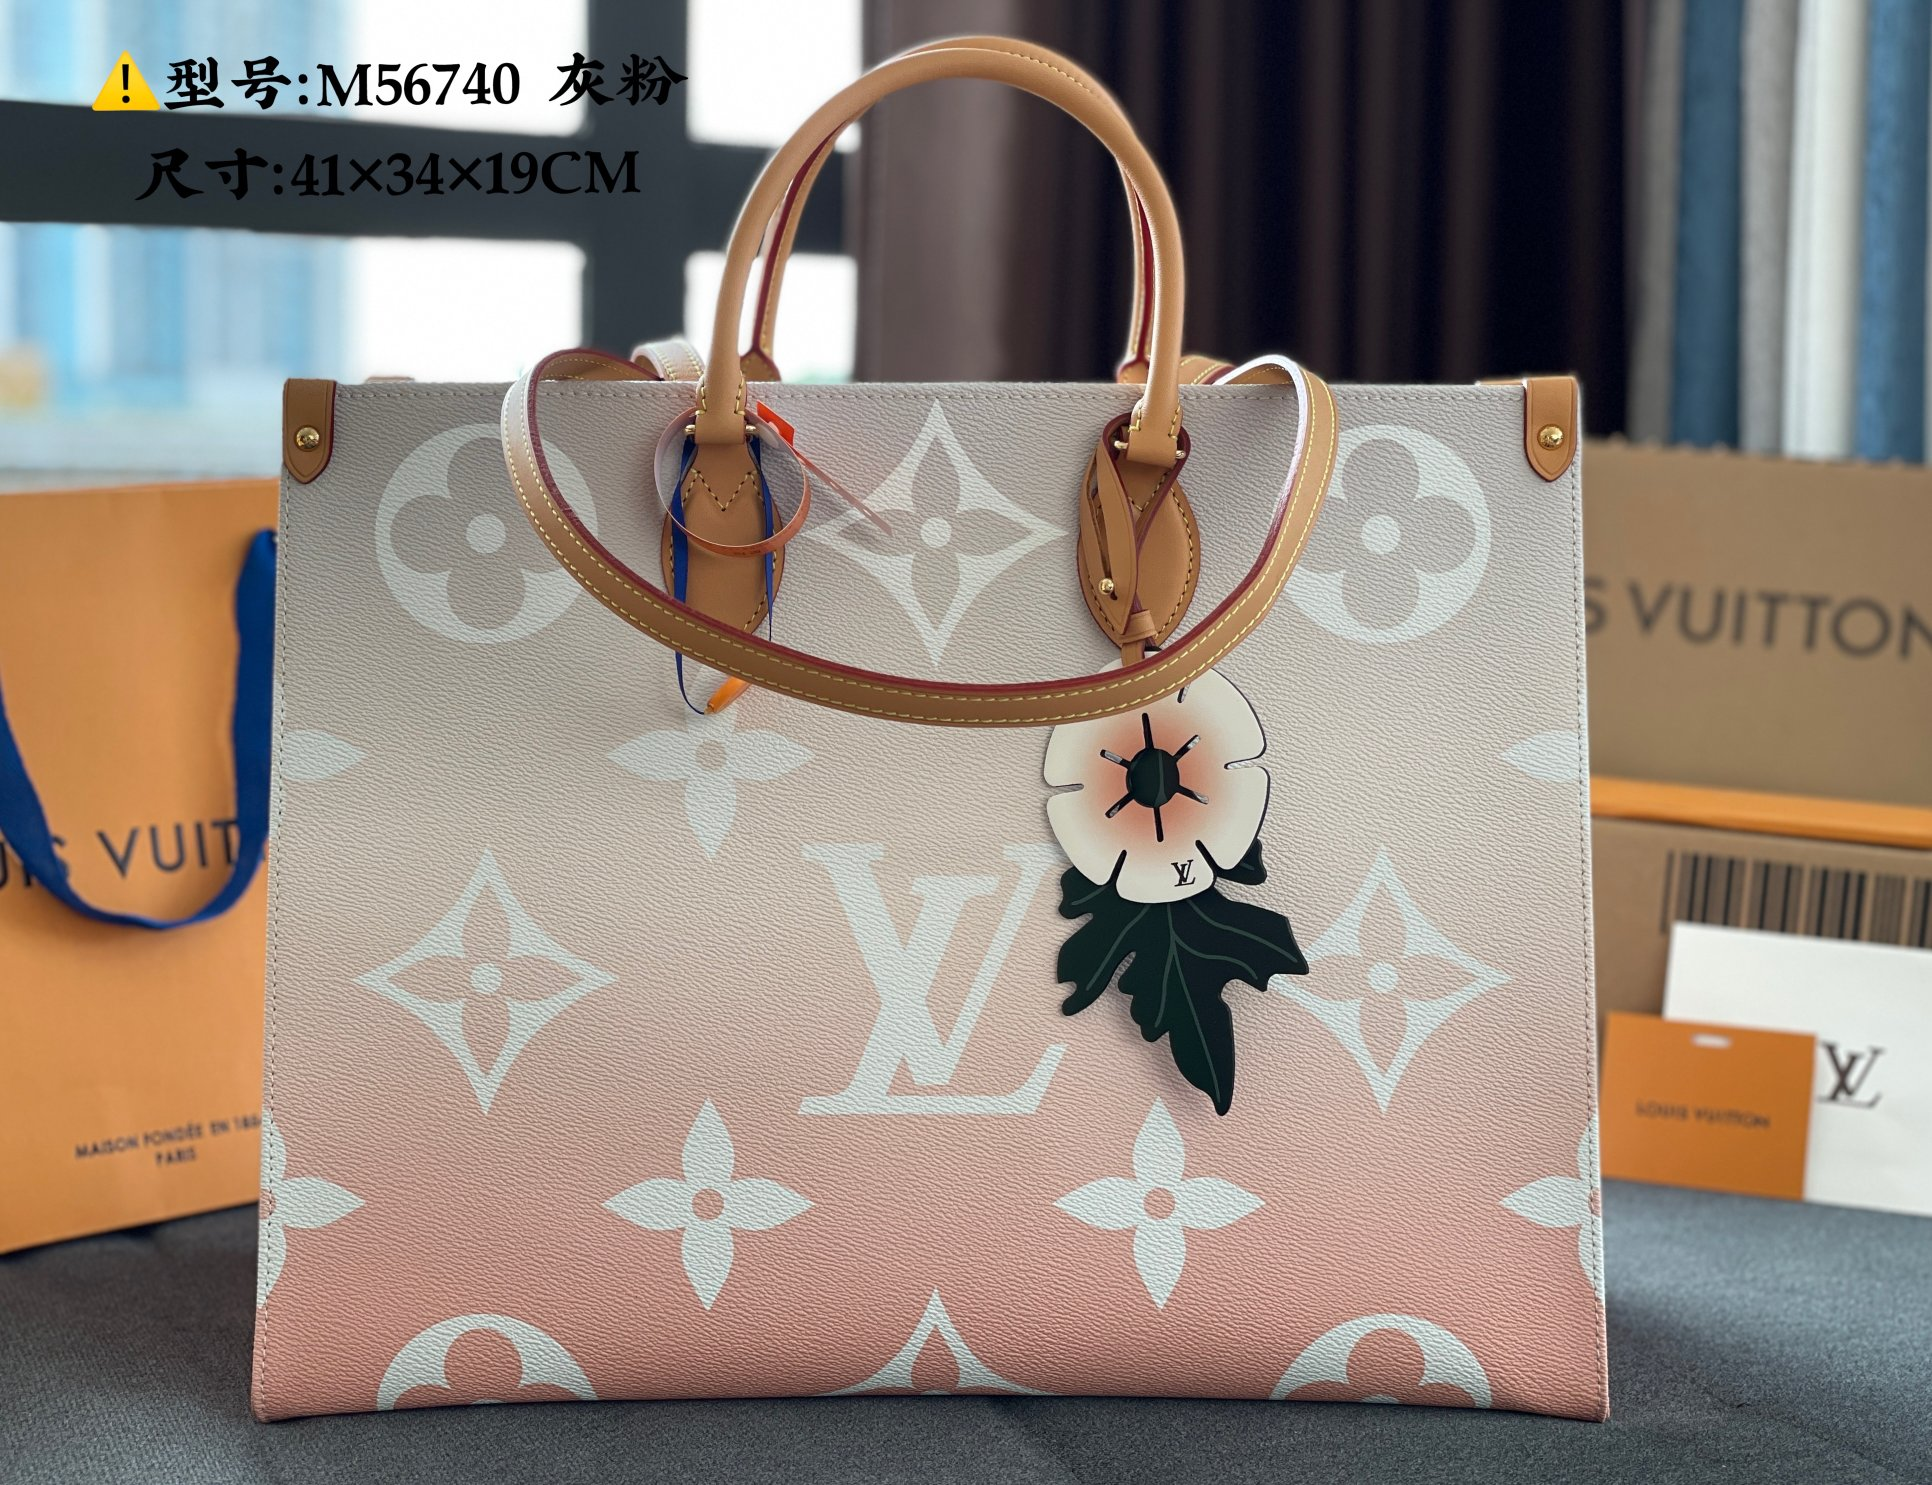 New Replica Louis Vuitton M57640 ONTHEGO GM Monogram Giant Coated Canvas Brume Gray